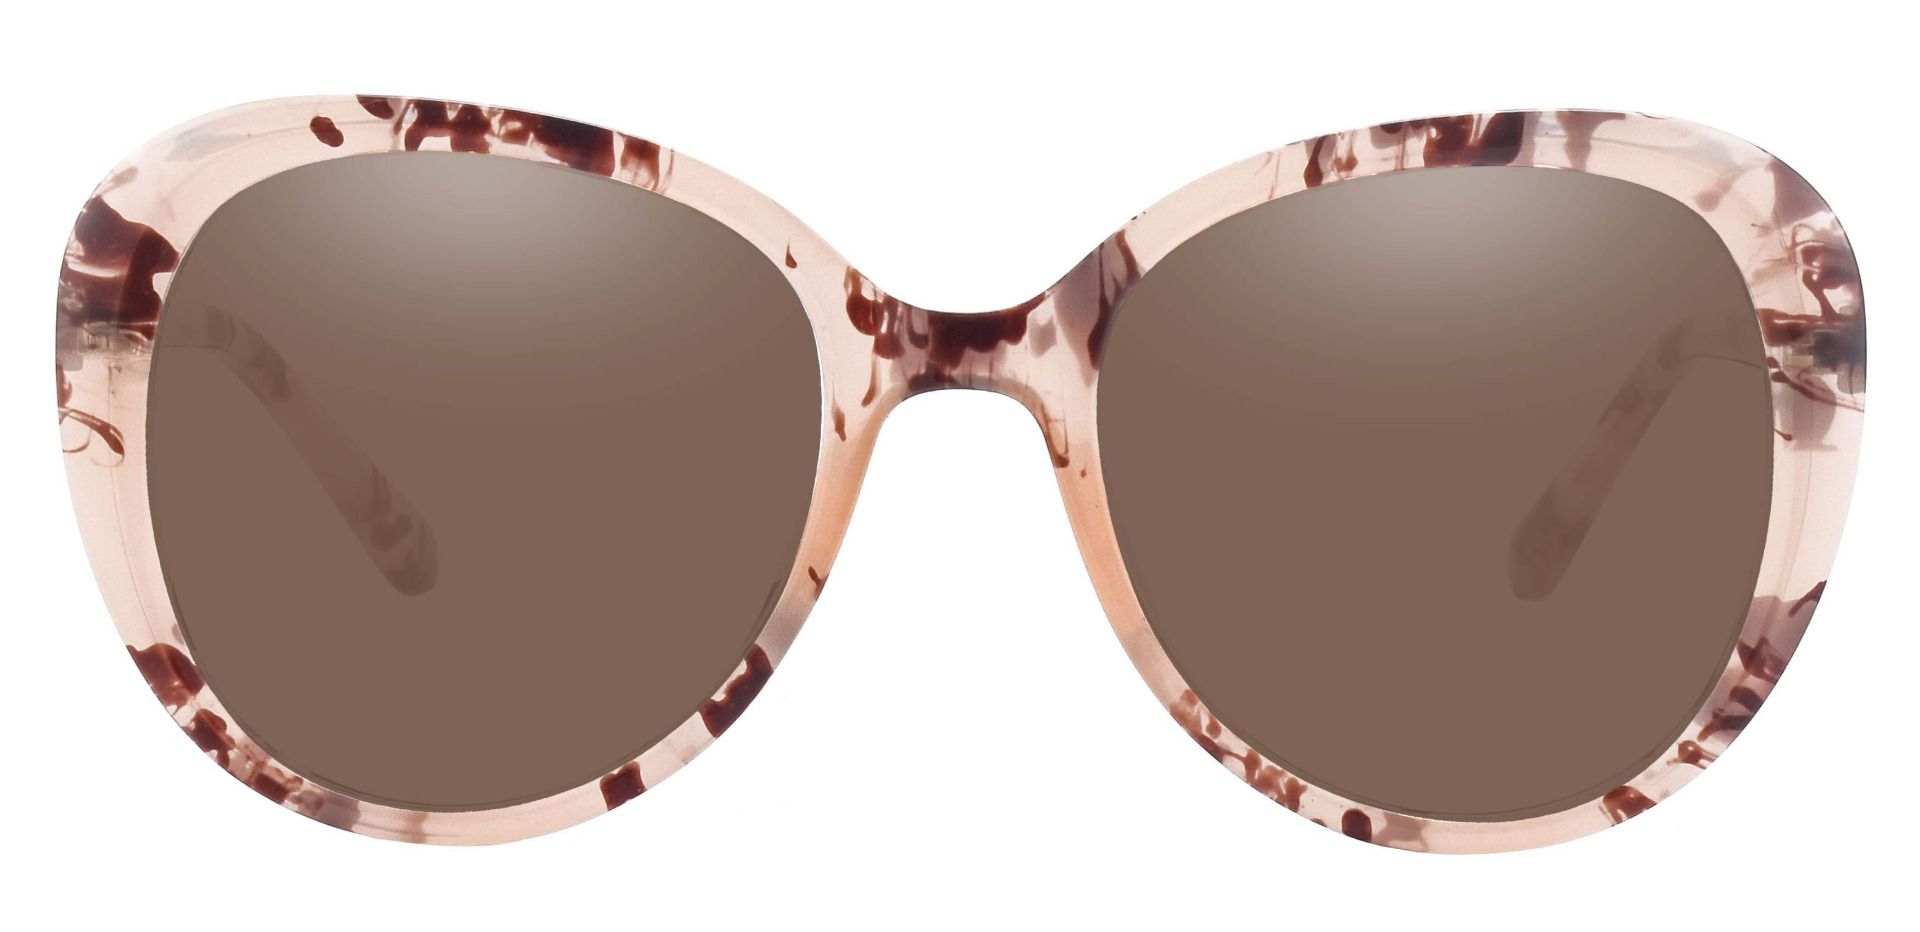 Sheridan Oval Prescription Sunglasses - Floral Frame With Brown Lenses